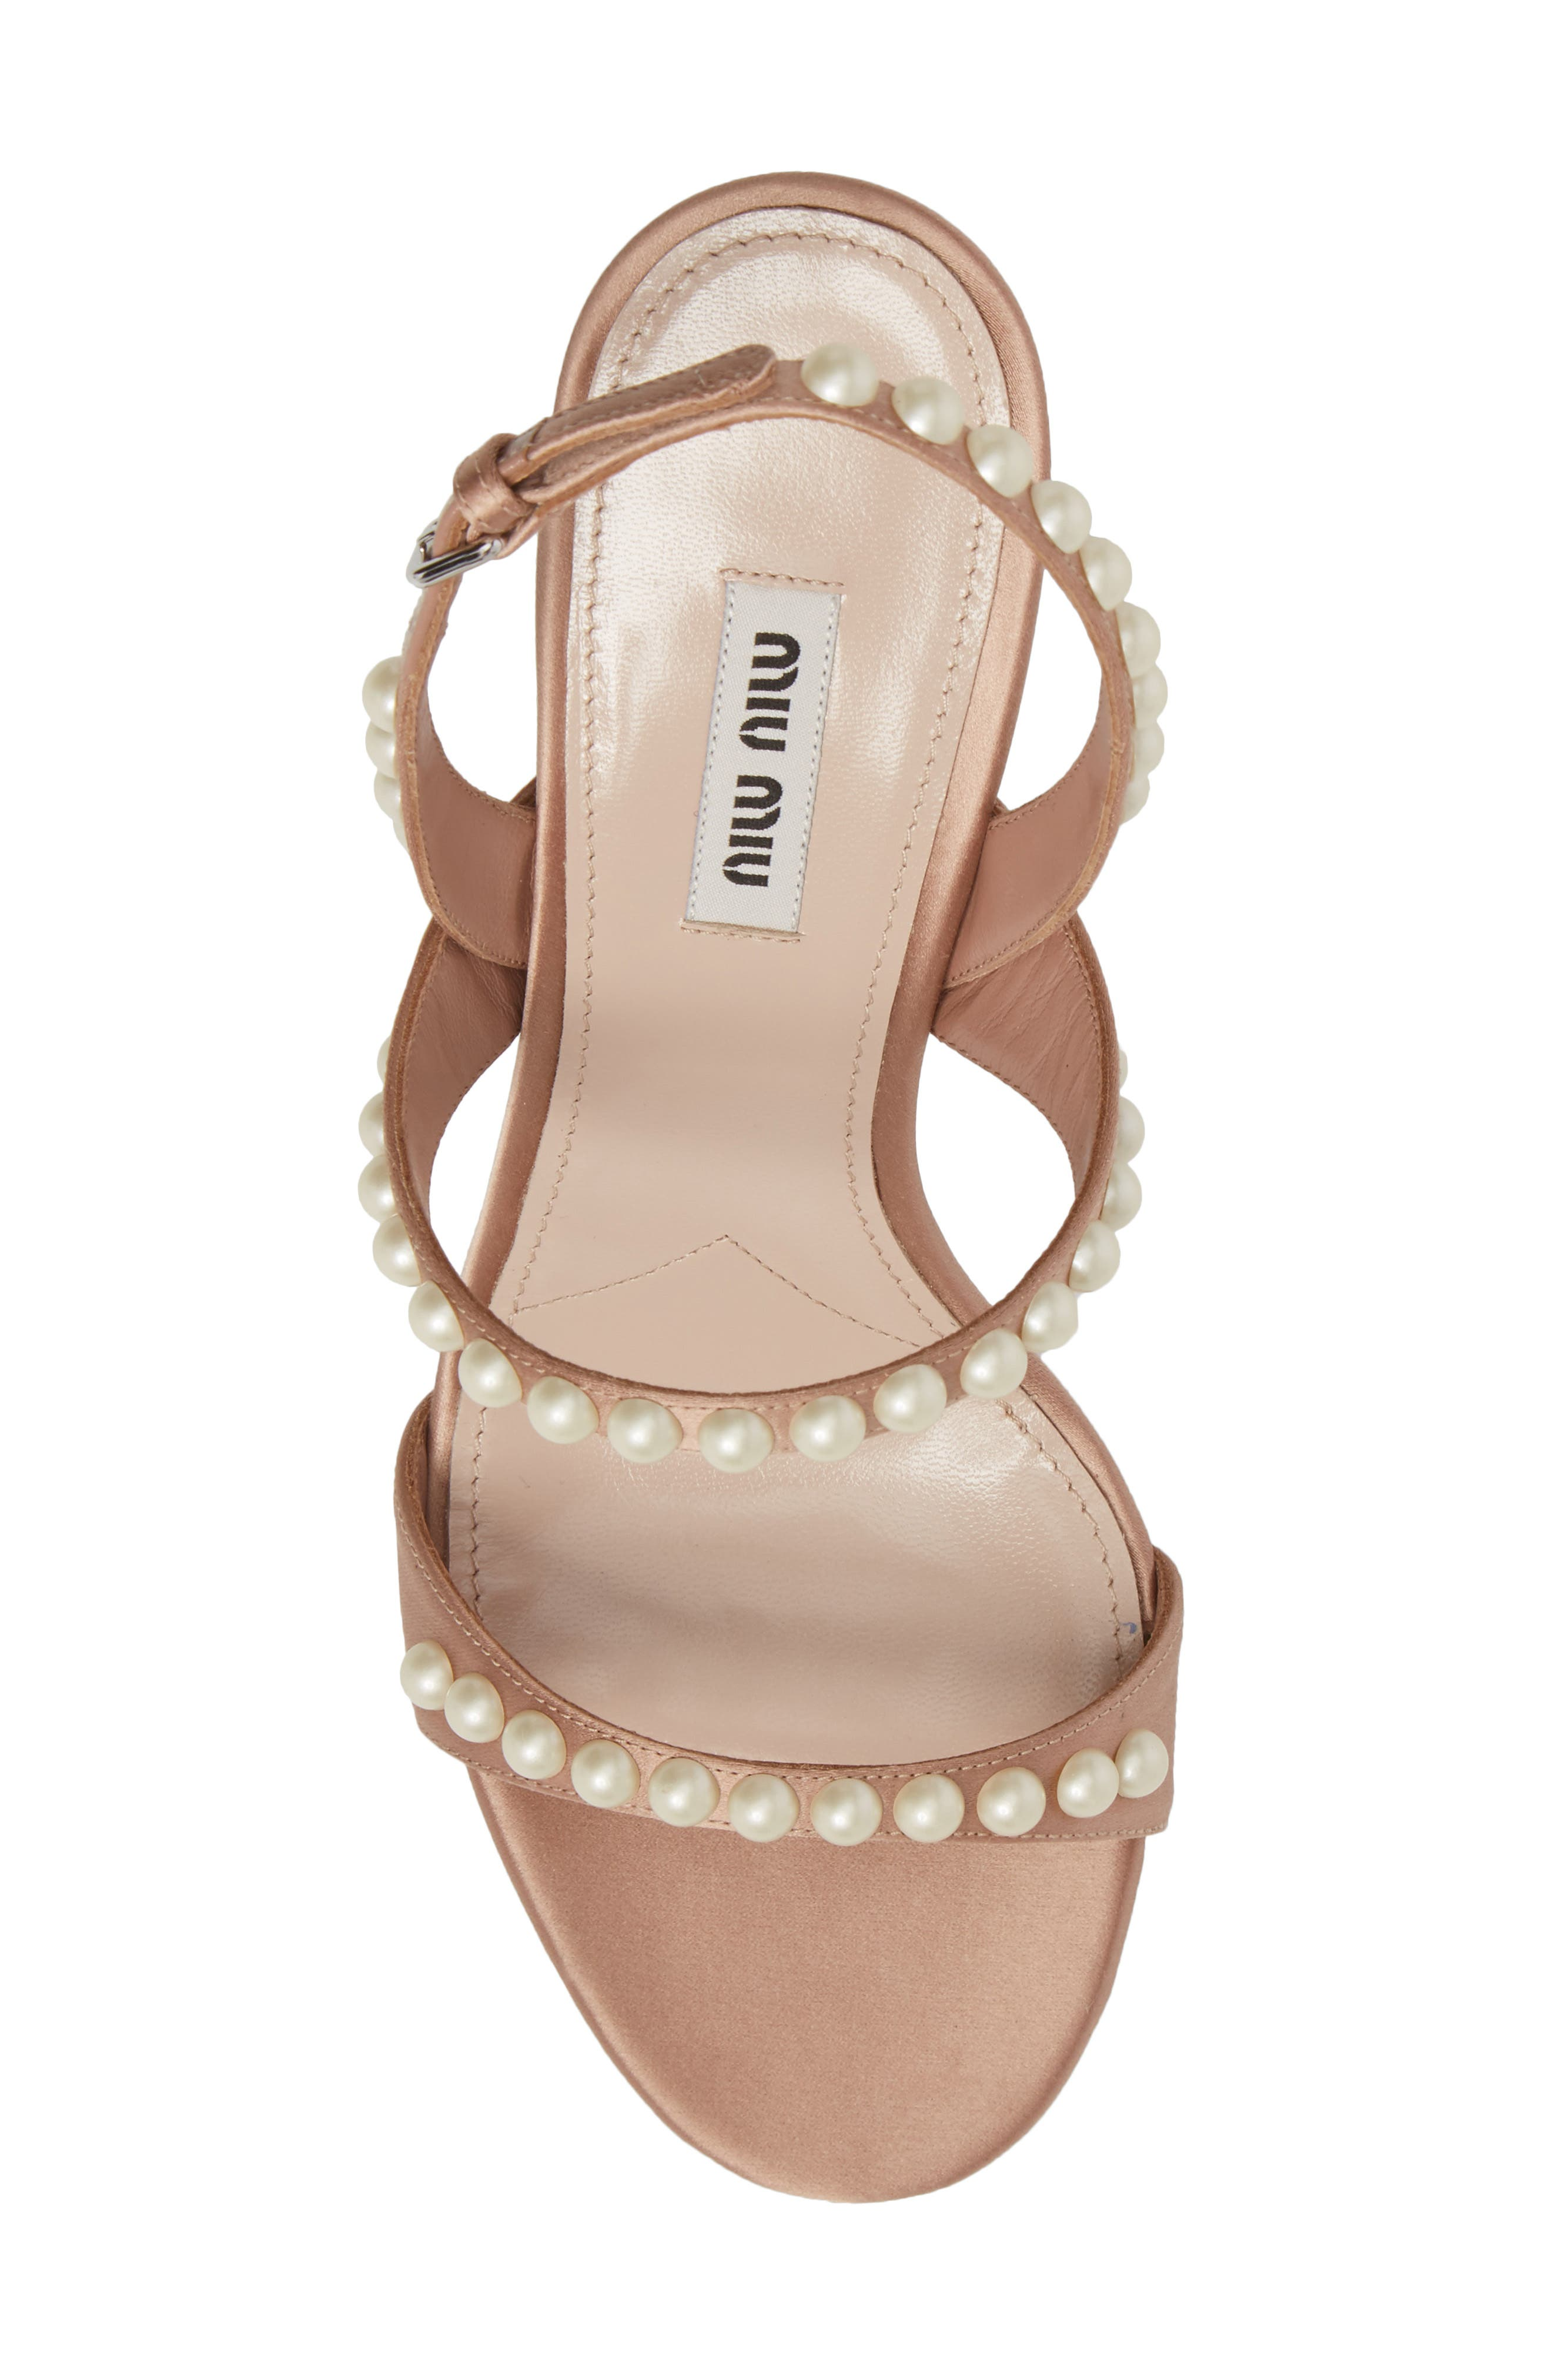 Imitation Pearl Slingback Sandal,                             Alternate thumbnail 5, color,                             250